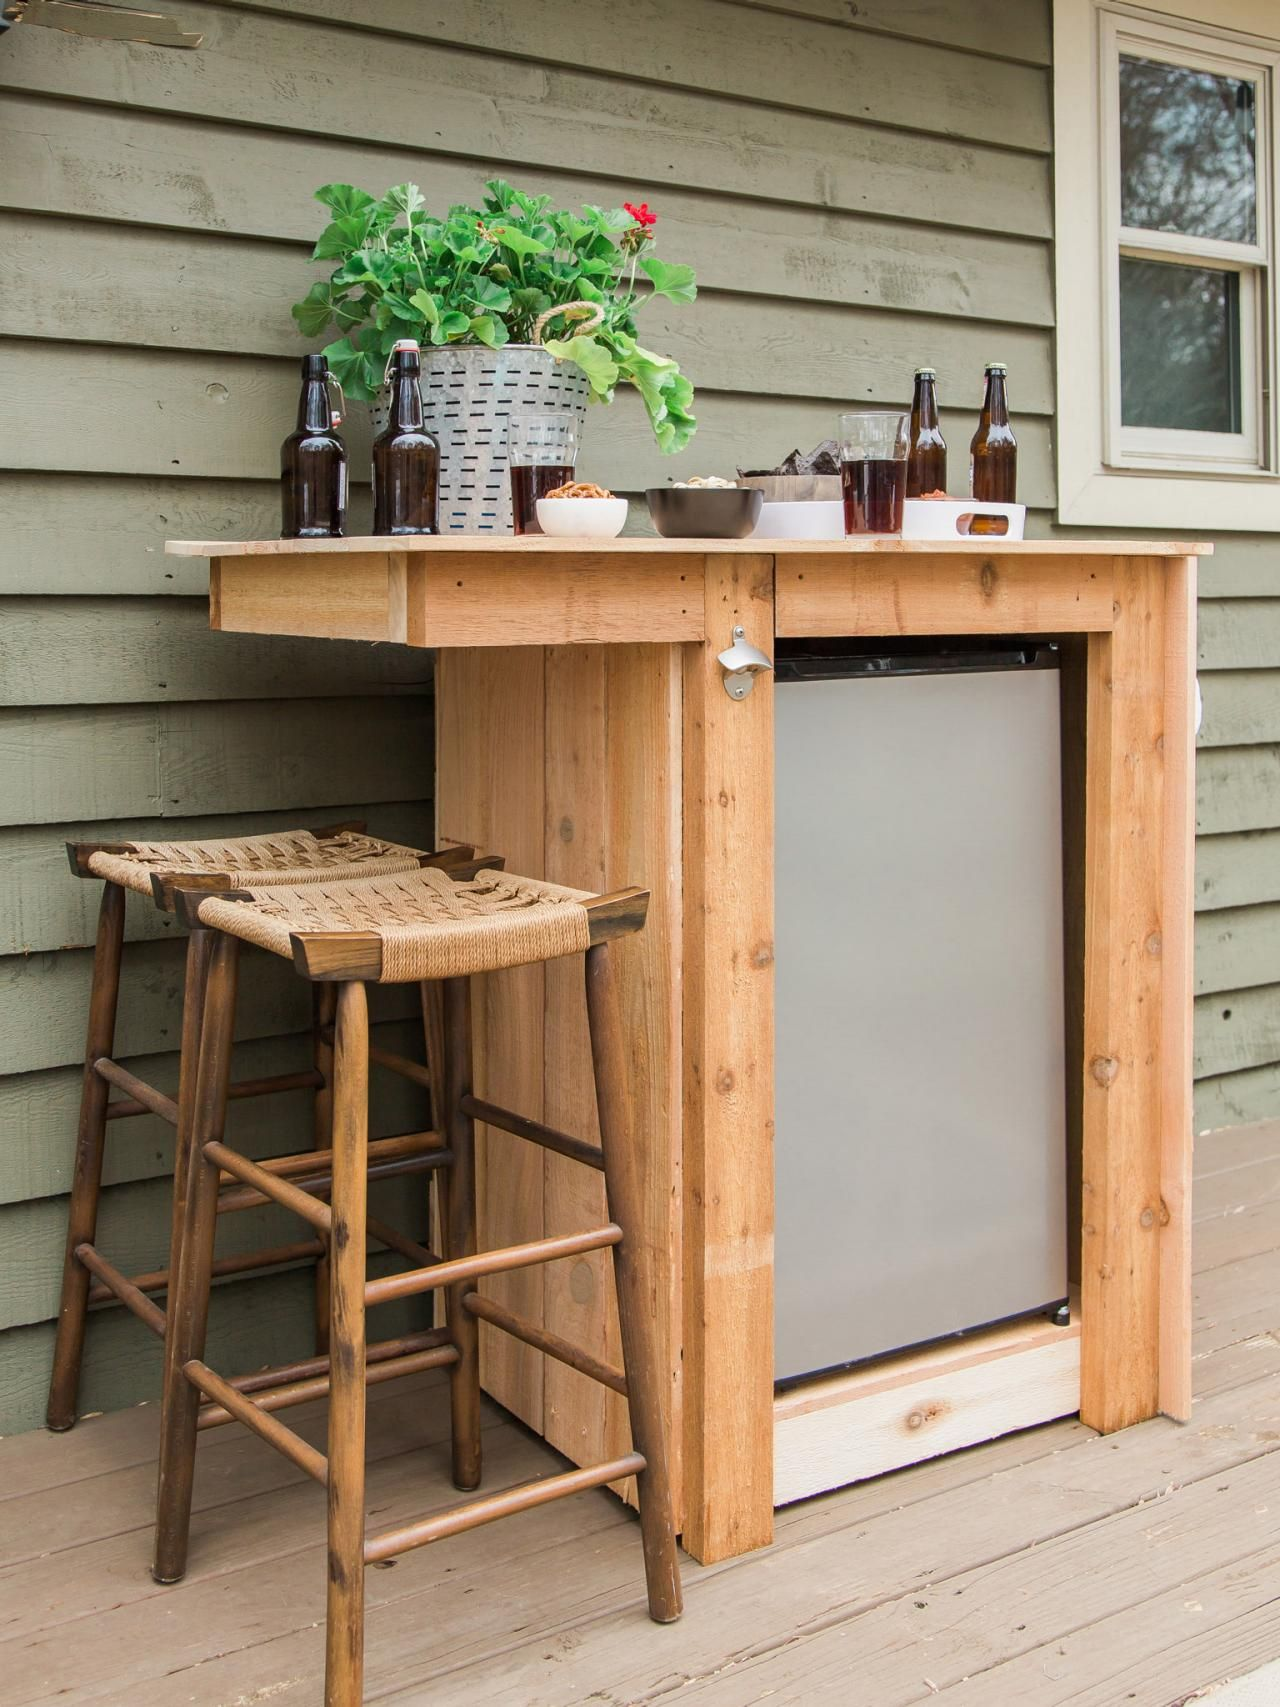 Furniture Outdoorbars Diy Outdoor Bars That Are Easy To Create Https Homybuzz Com 2020 02 04 Diy Outdo In 2020 Diy Outdoor Bar Outdoor Refrigerator Outdoor Remodel